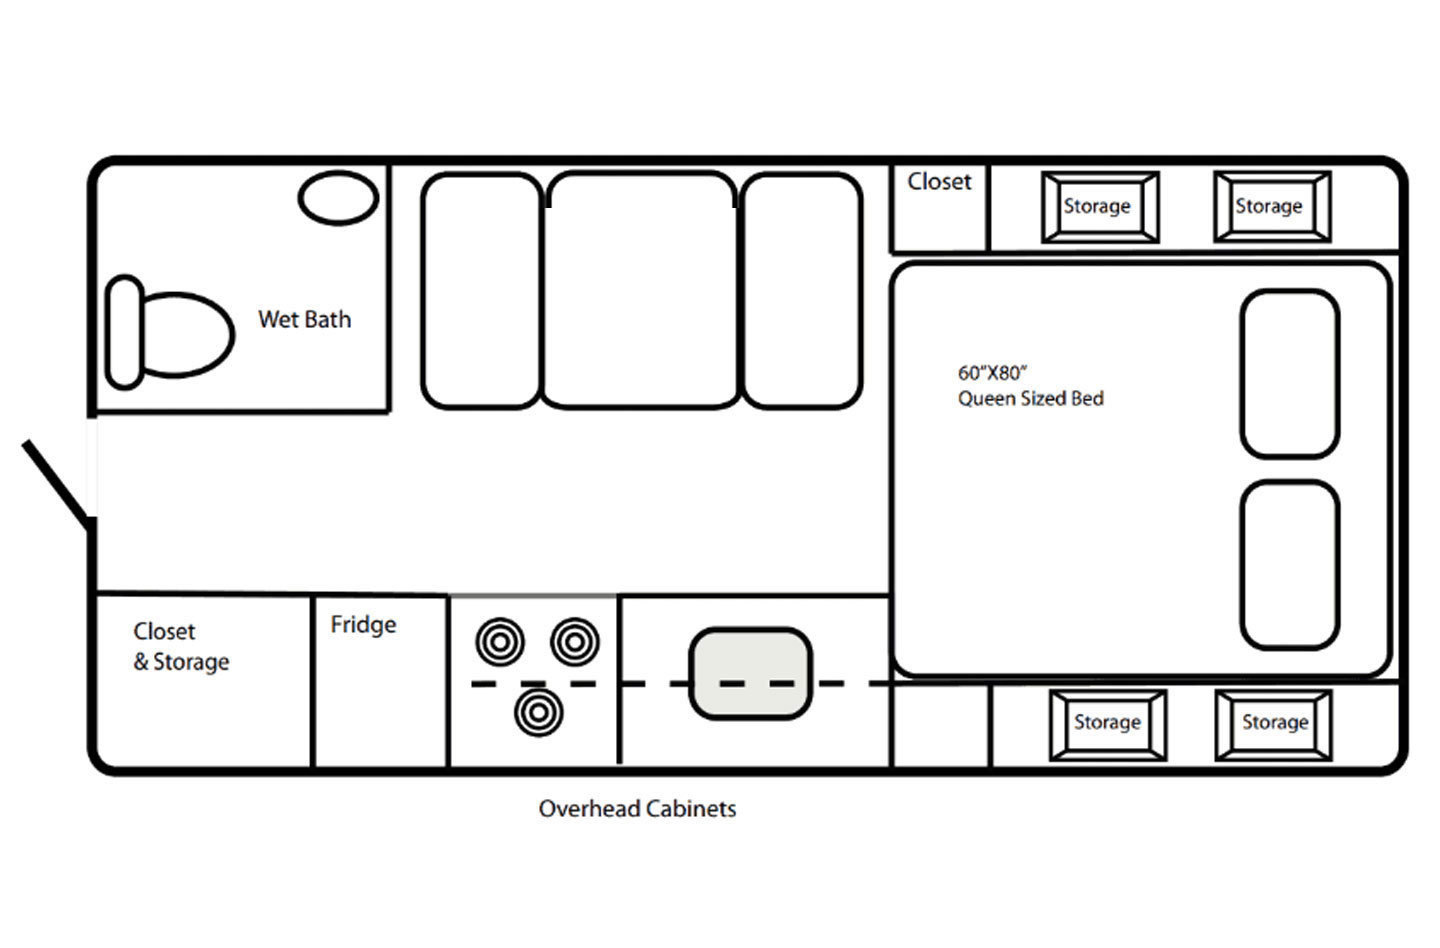 2021 Northern Lite 8.11 EX Wet Bath Limited Edition Floorplan